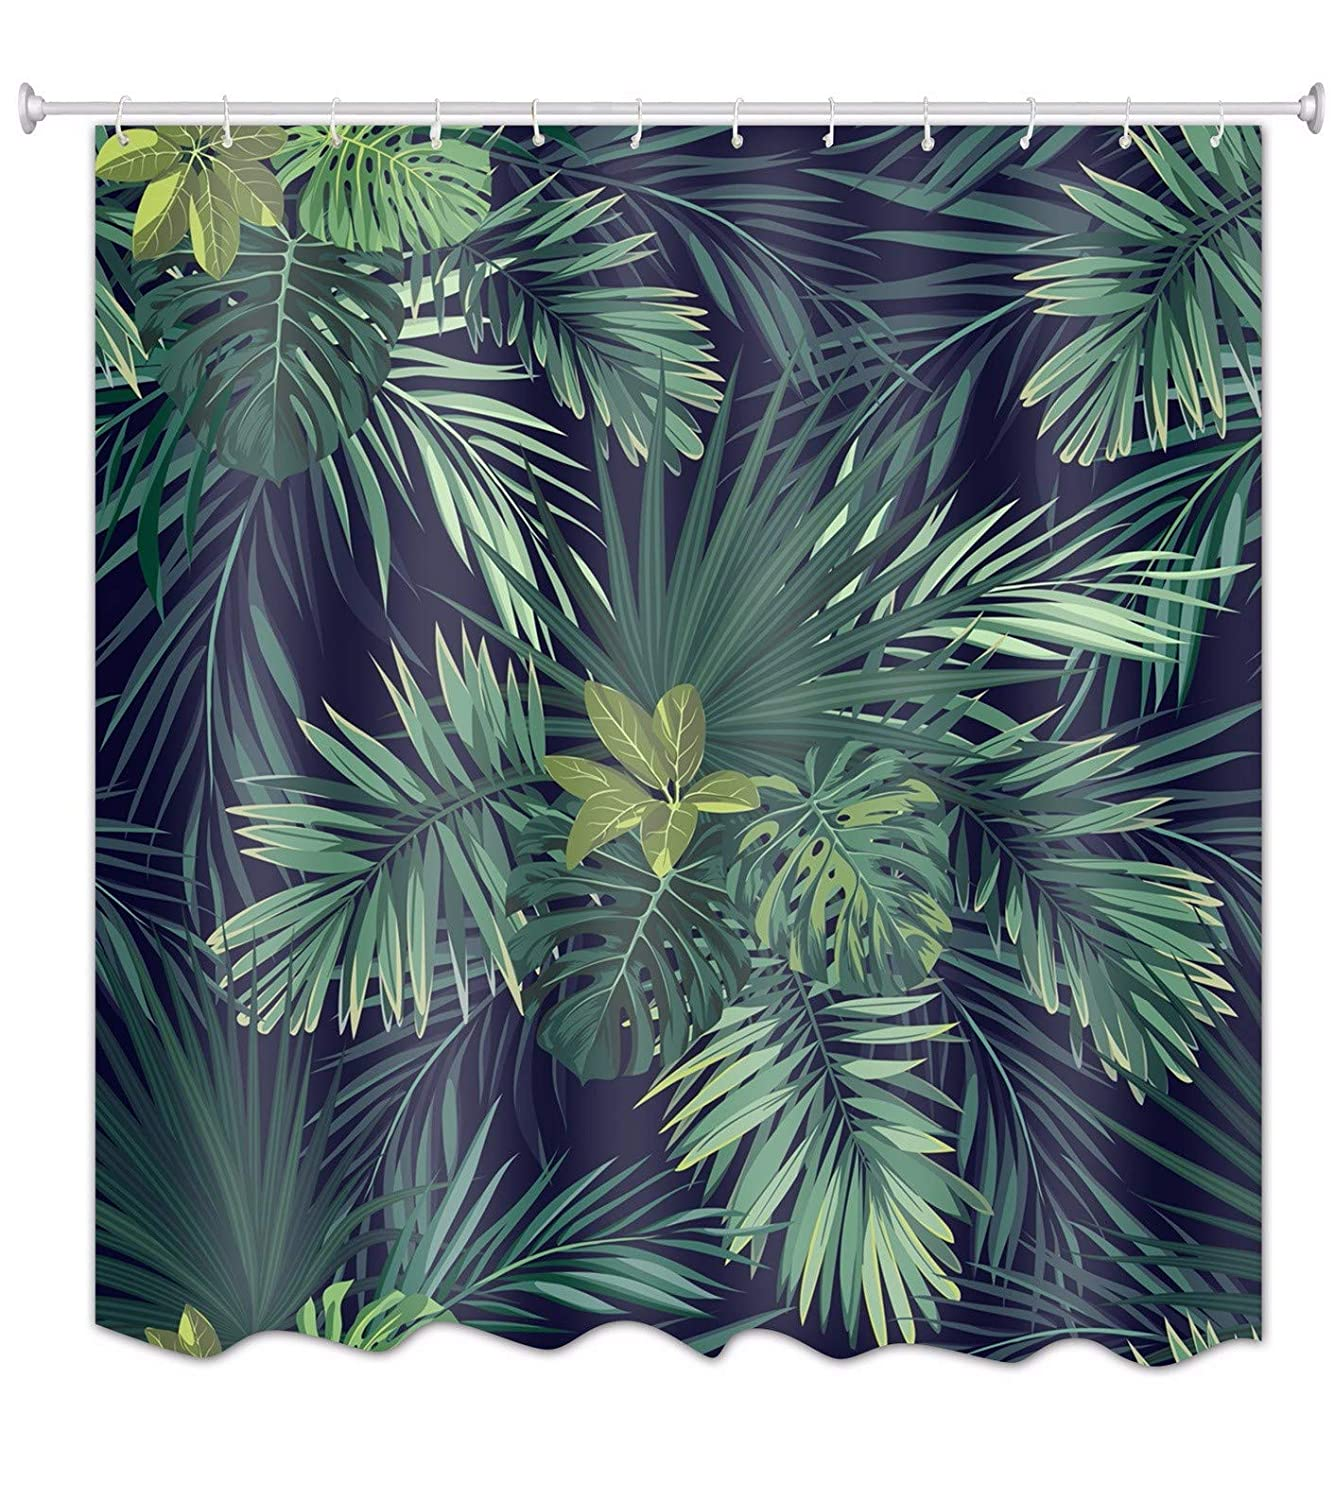 A.Monamour White Backgrounds Green Tropical Palm Tree Leaves Print Waterproof Mildew Resistant Fabric Polyester Shower Curtain for Bathroom Decors 12Pcs Curtain Hooks Included 150x180 cm 60x72